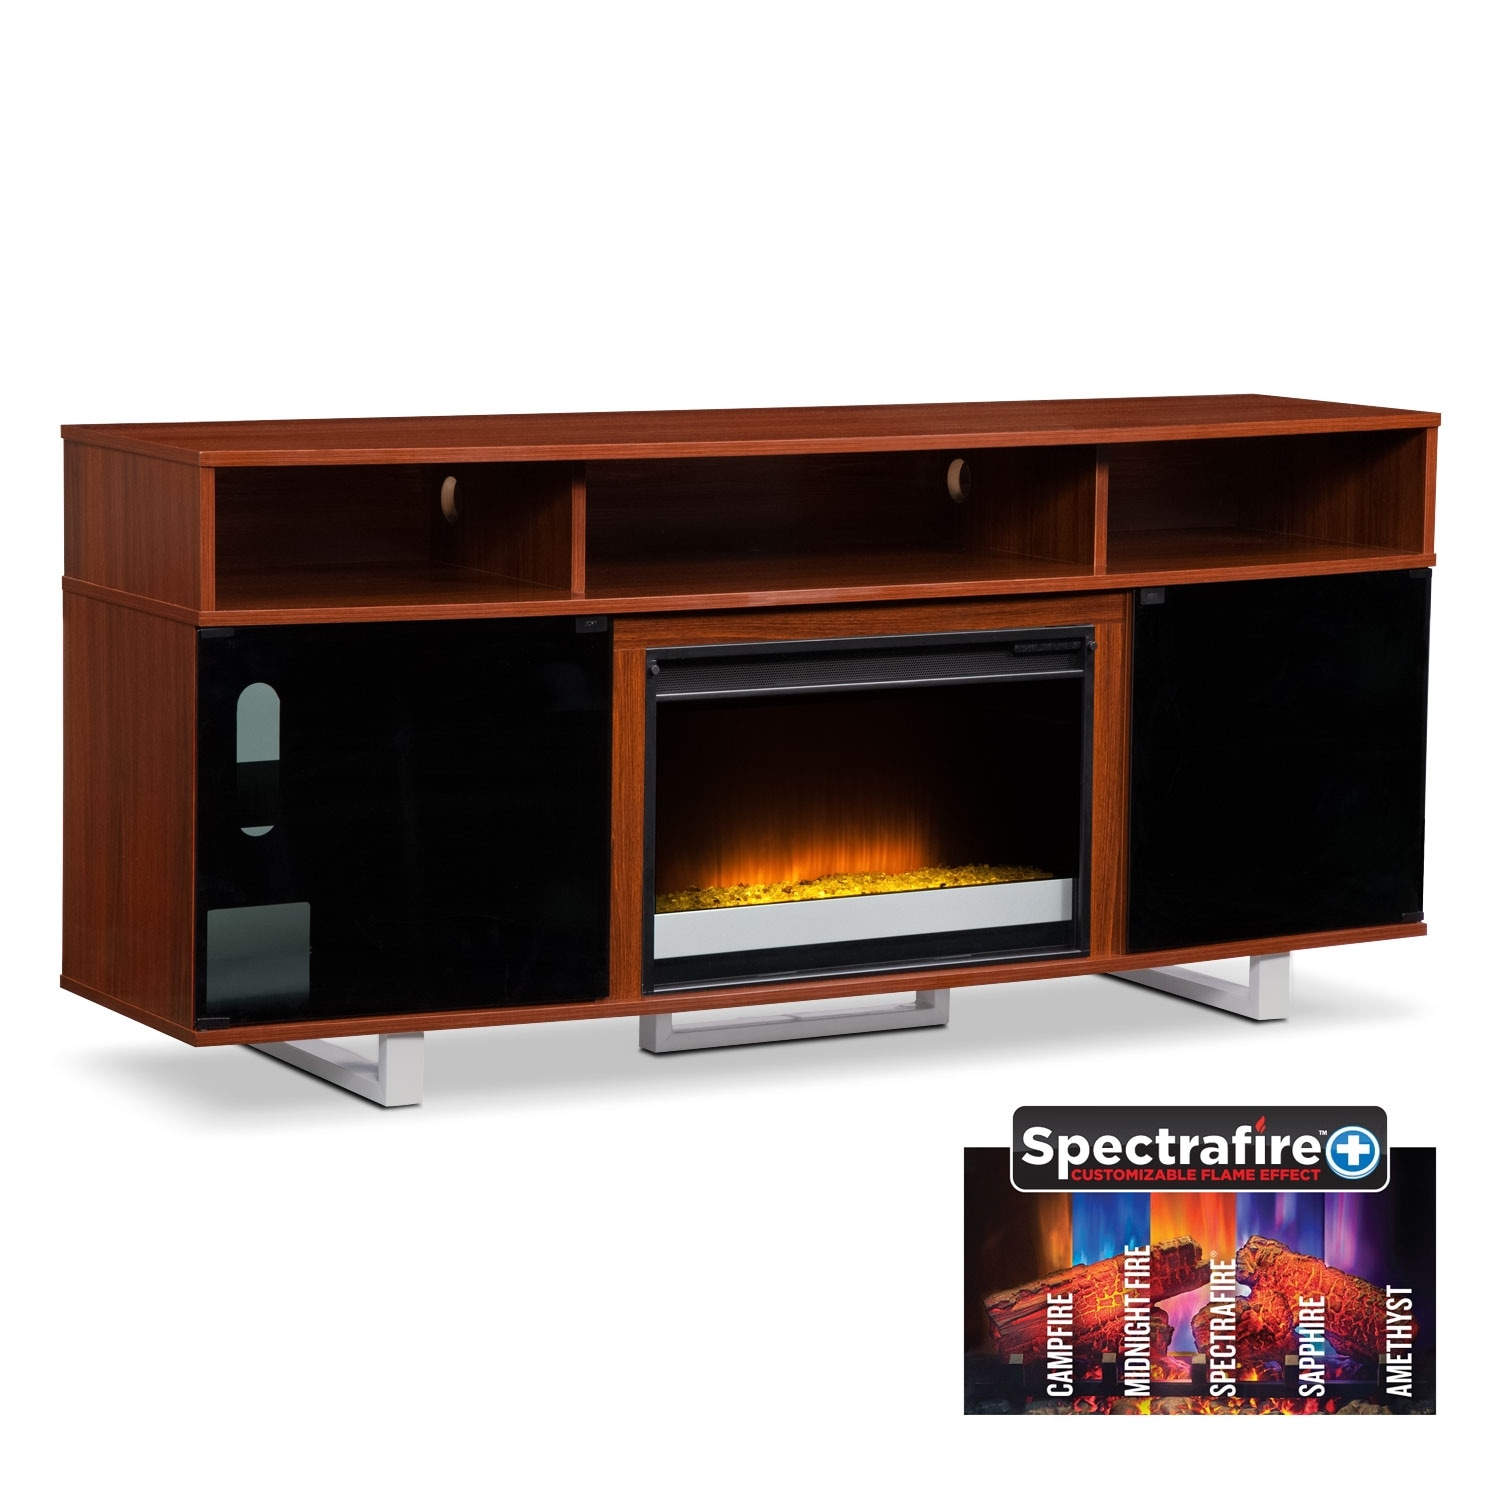 "Pacer 72"" Contemporary Fireplace TV Stand - Cherry"